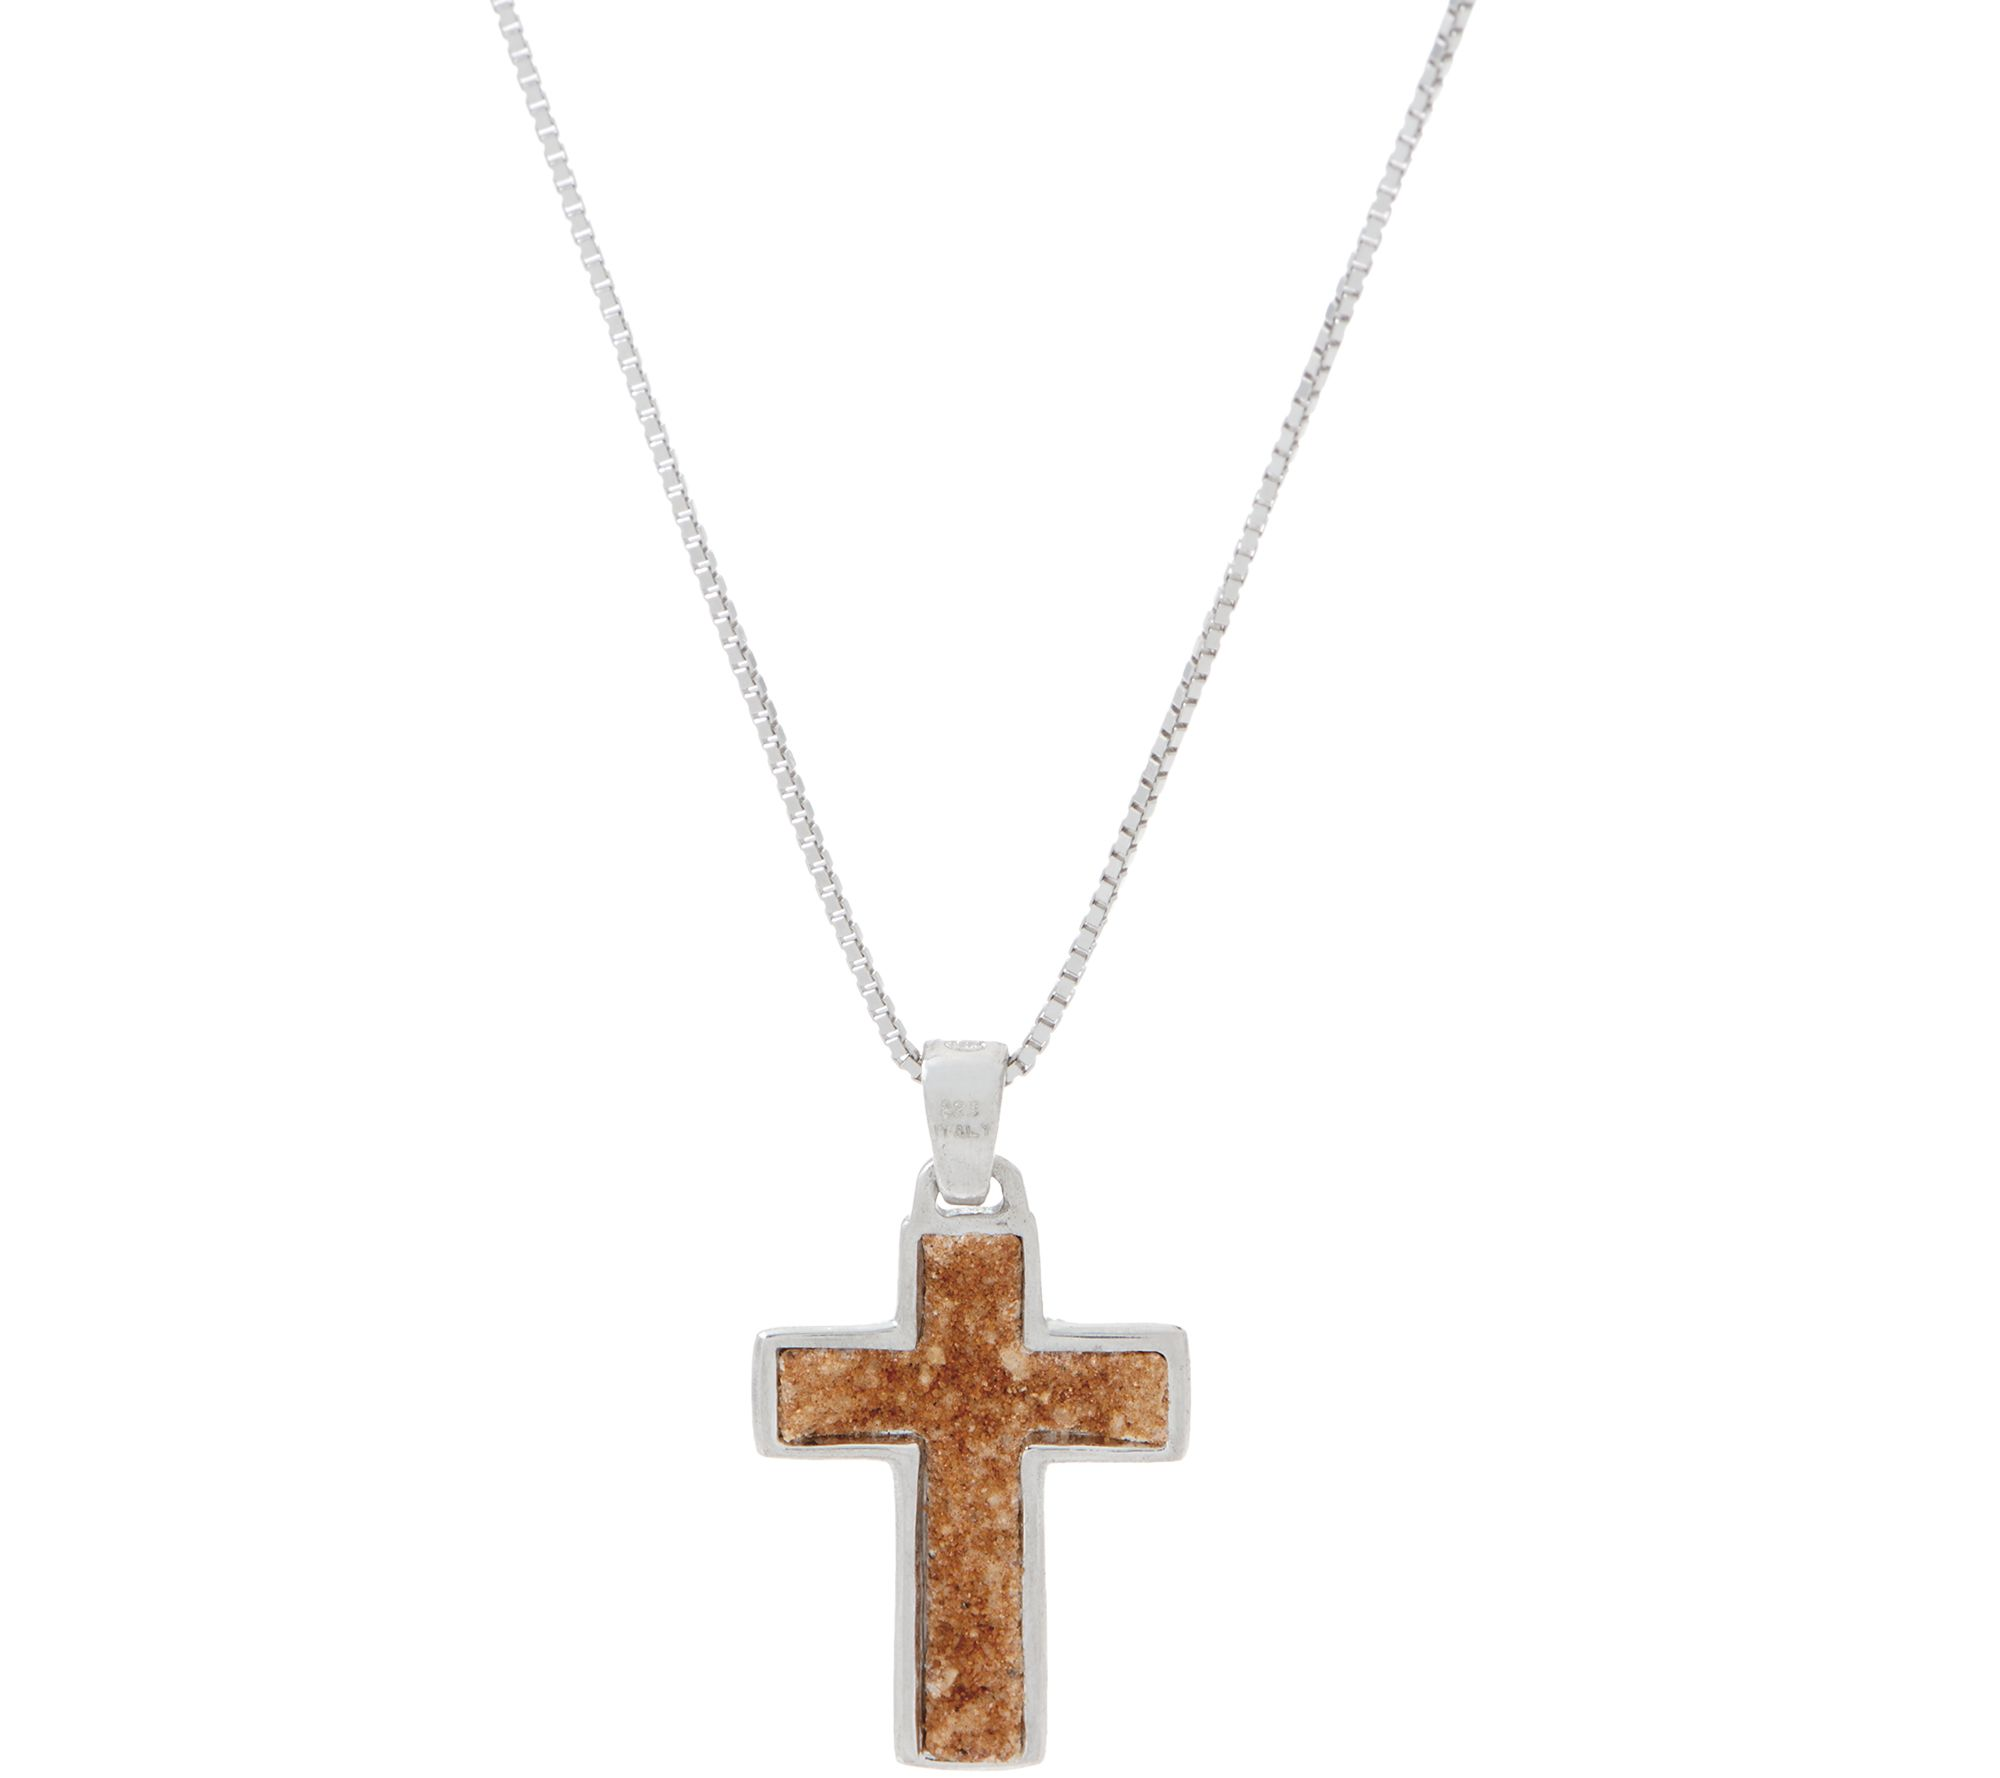 pendant cross product plated garnet gem zircon jerusalem gold with min necklace red gems